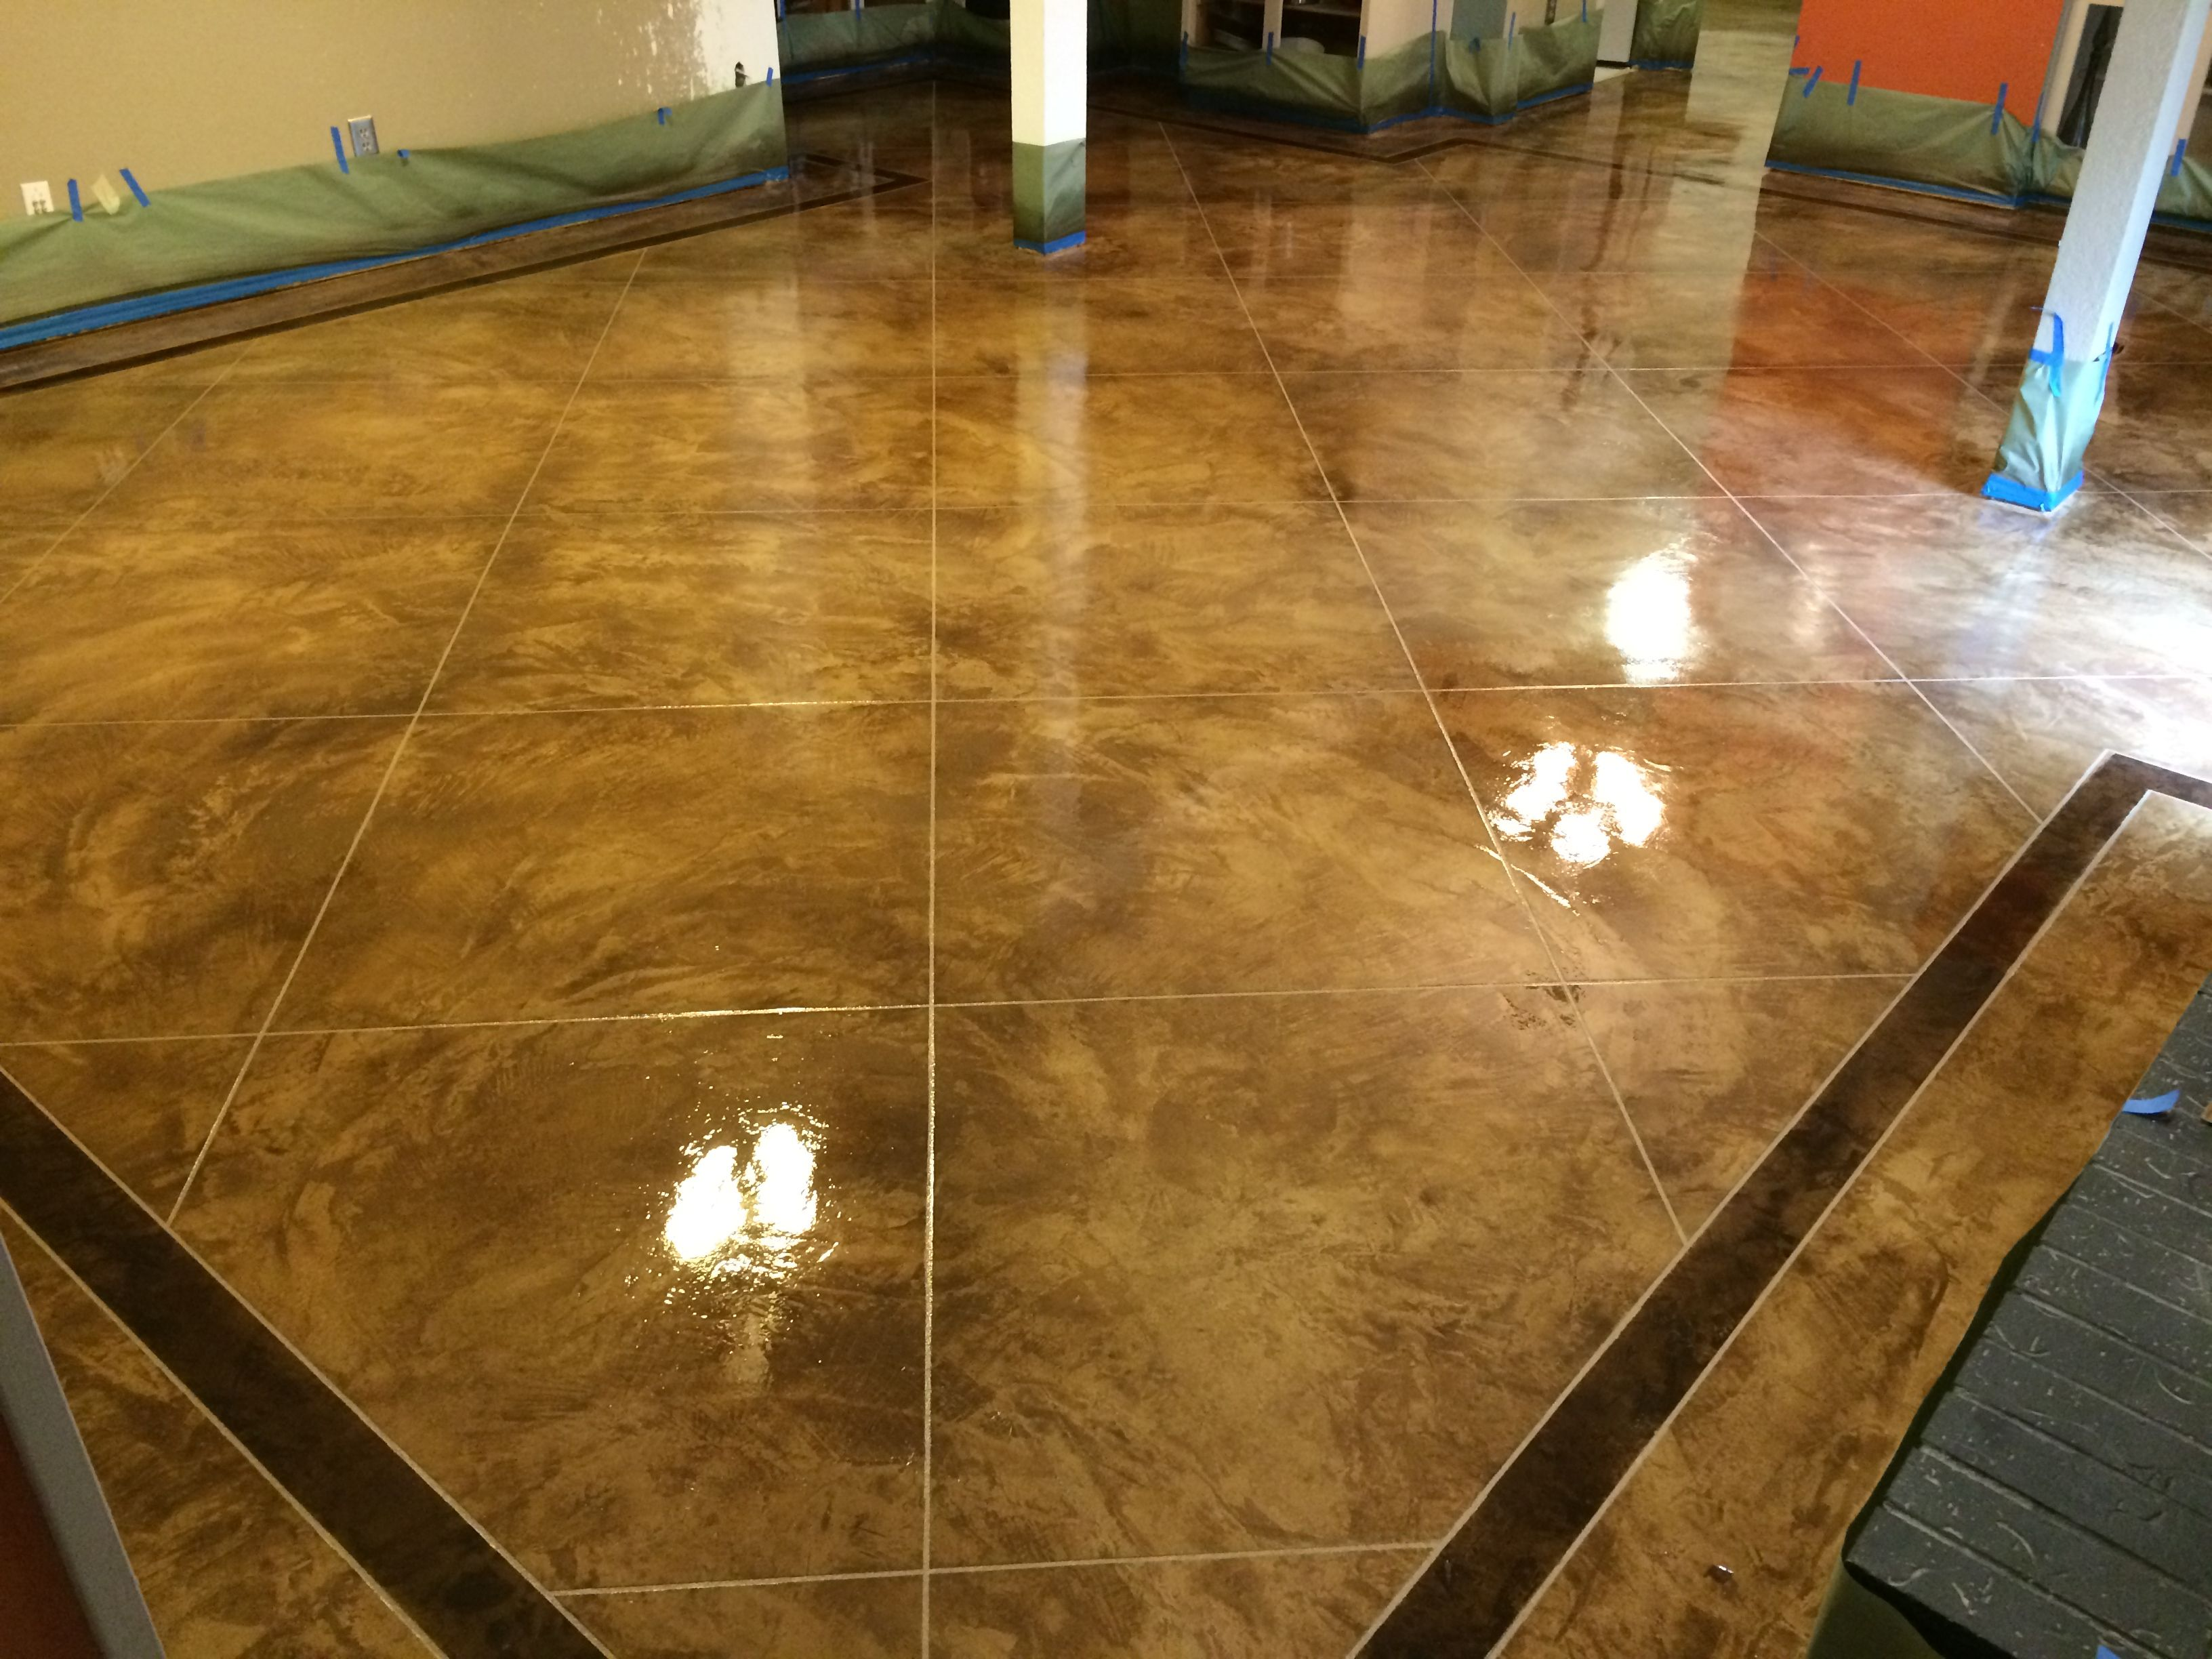 Resurfaced Concrete Floors With Black Inset Border And Diluted Black Tile Pattern Clear Acrylic